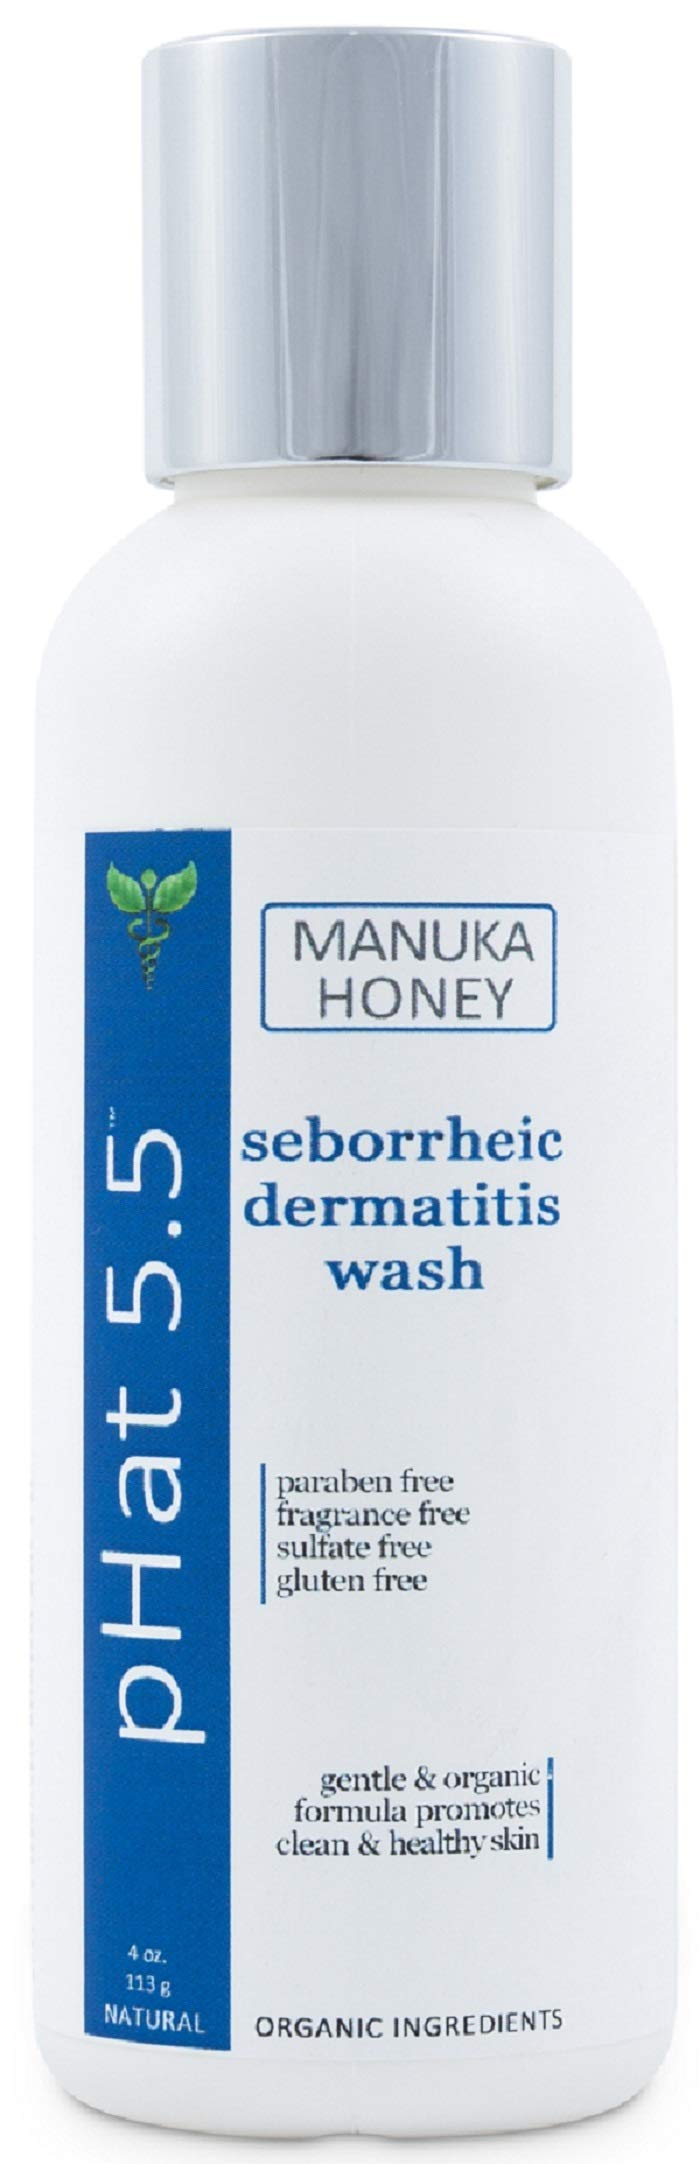 Seborrheic & Atopic Dermatitis Gentle Face Wash with Manuka Honey - Natural & Organic Face Cleanser & Body Wash For Sensitive Skin - Hypoallergenic, Paraben Free & Sulfate Free Acne Face Wash (4 oz) by pHat 5.5